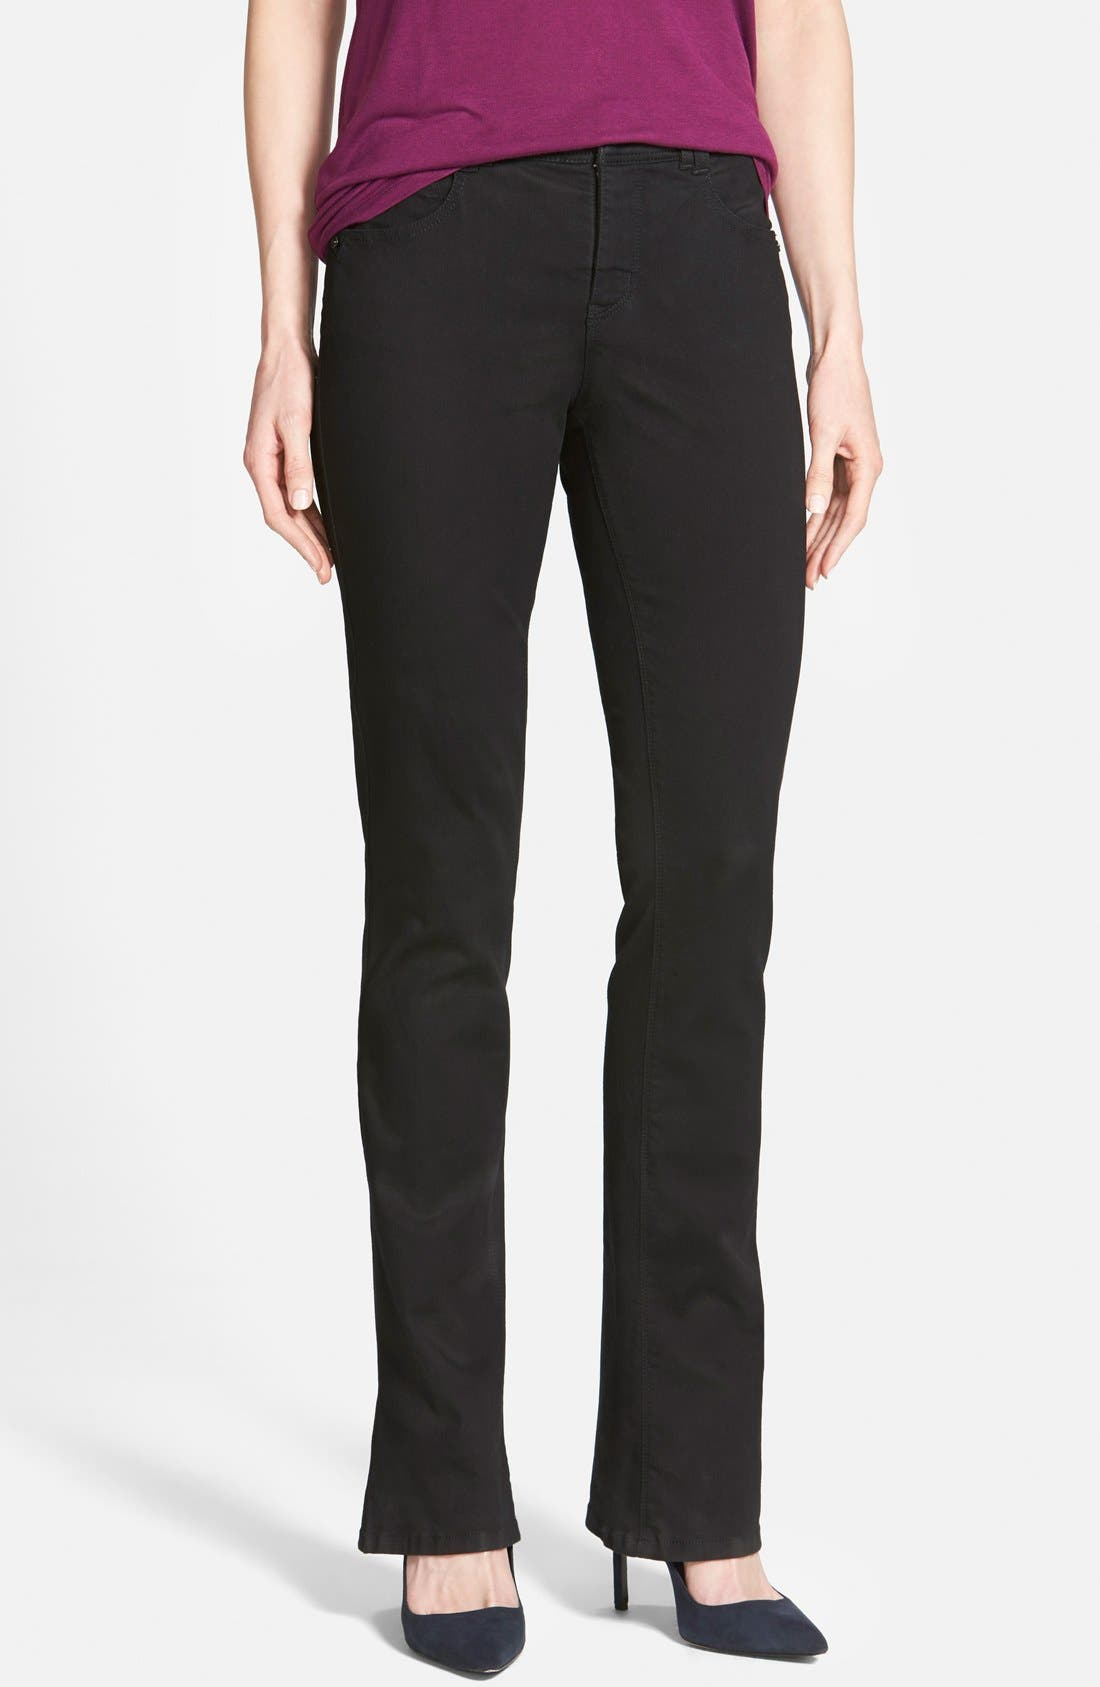 Wit & Wisdom 'Absolution' Itty Bitty Bootcut Jeans (Black) (Nordstrom Online Exclusive)